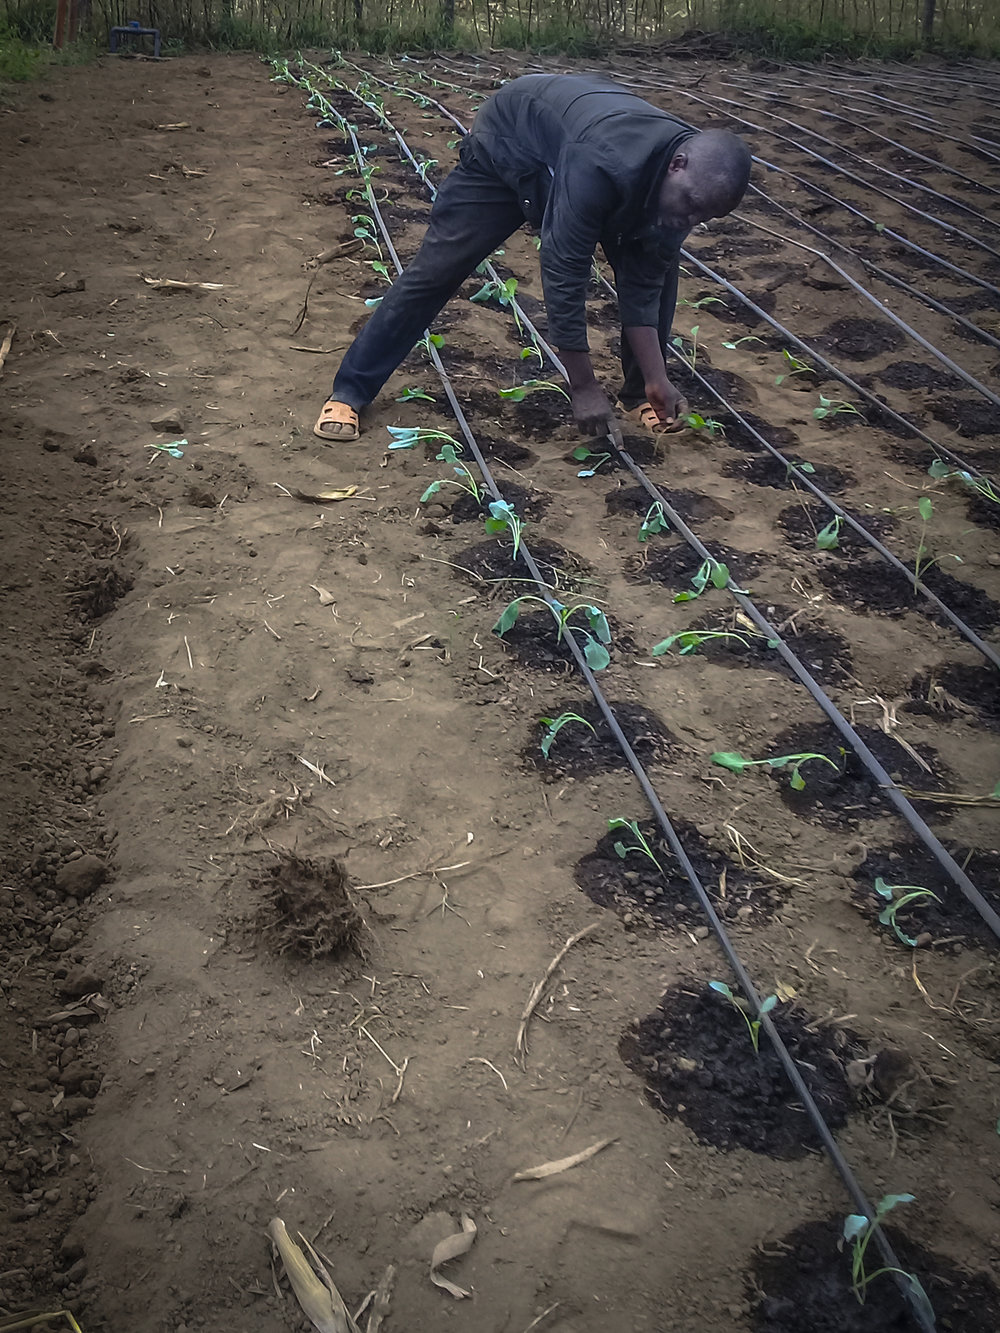 Josphat sets the hoses for drip irrigation at NECC